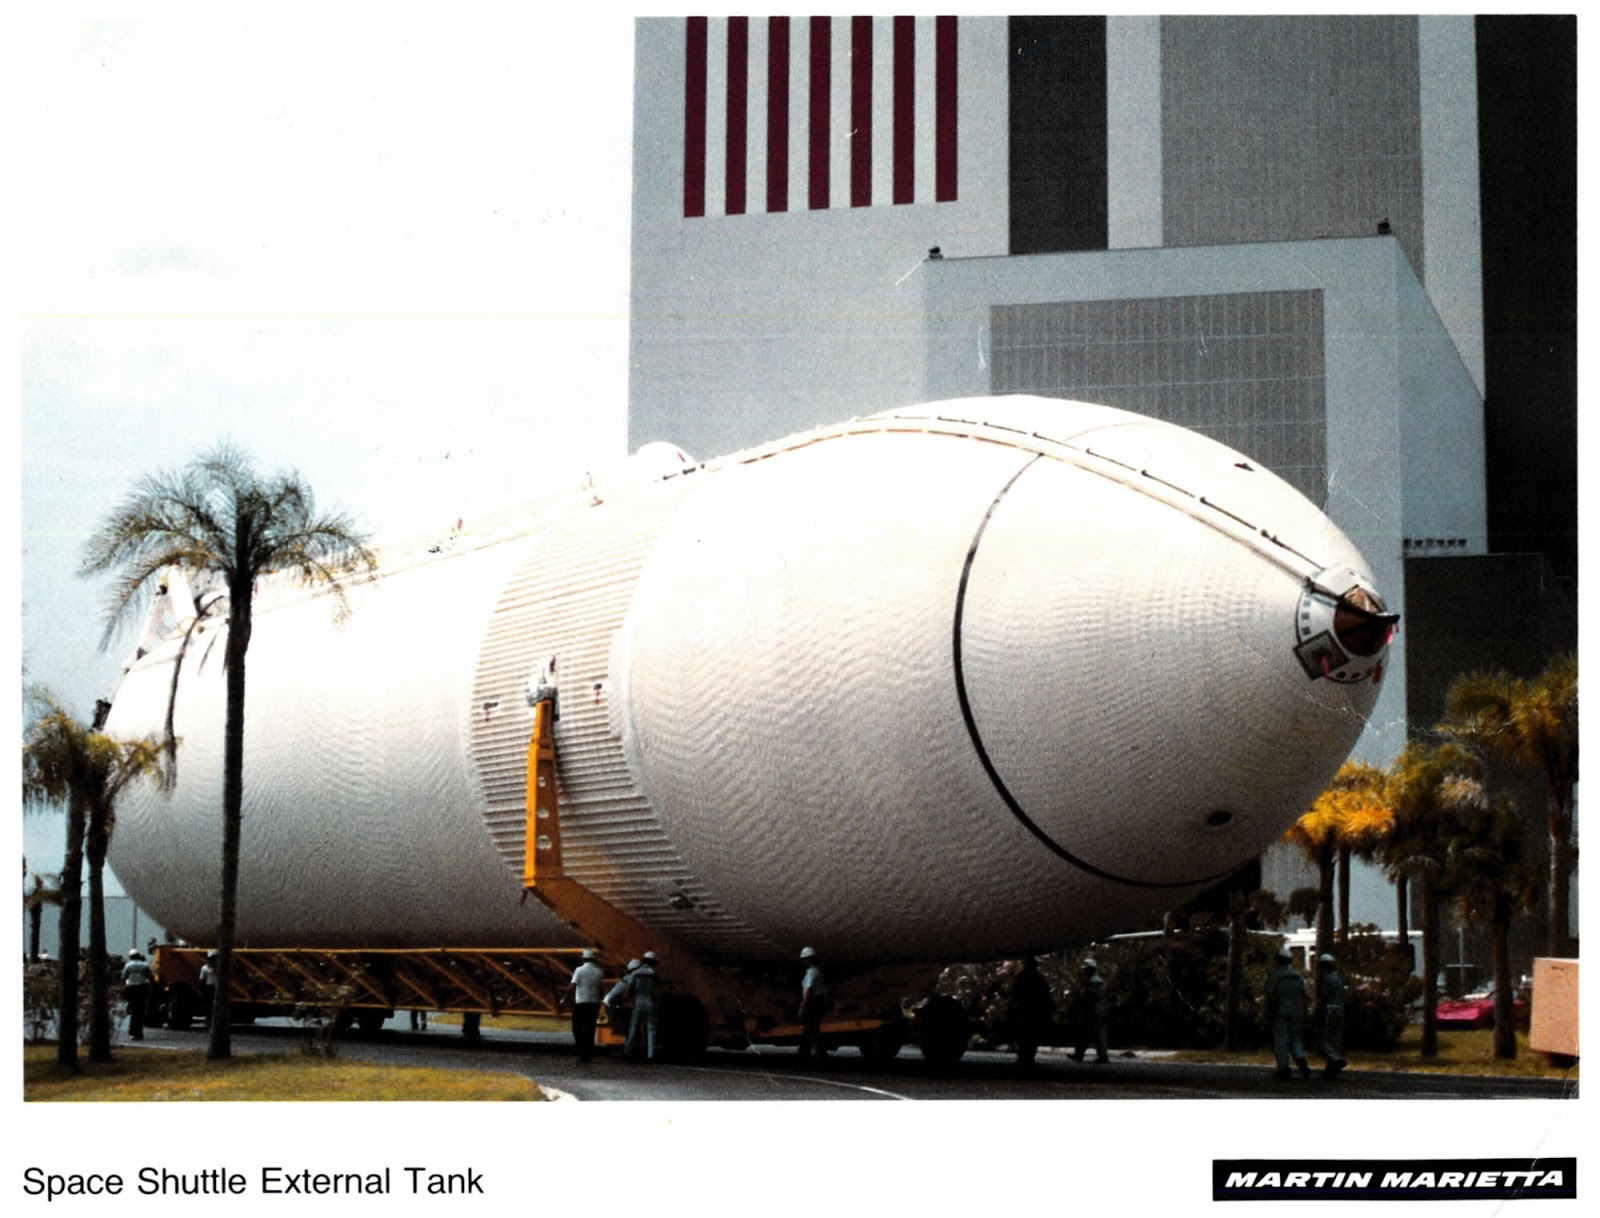 space shuttle external tank - photo #15